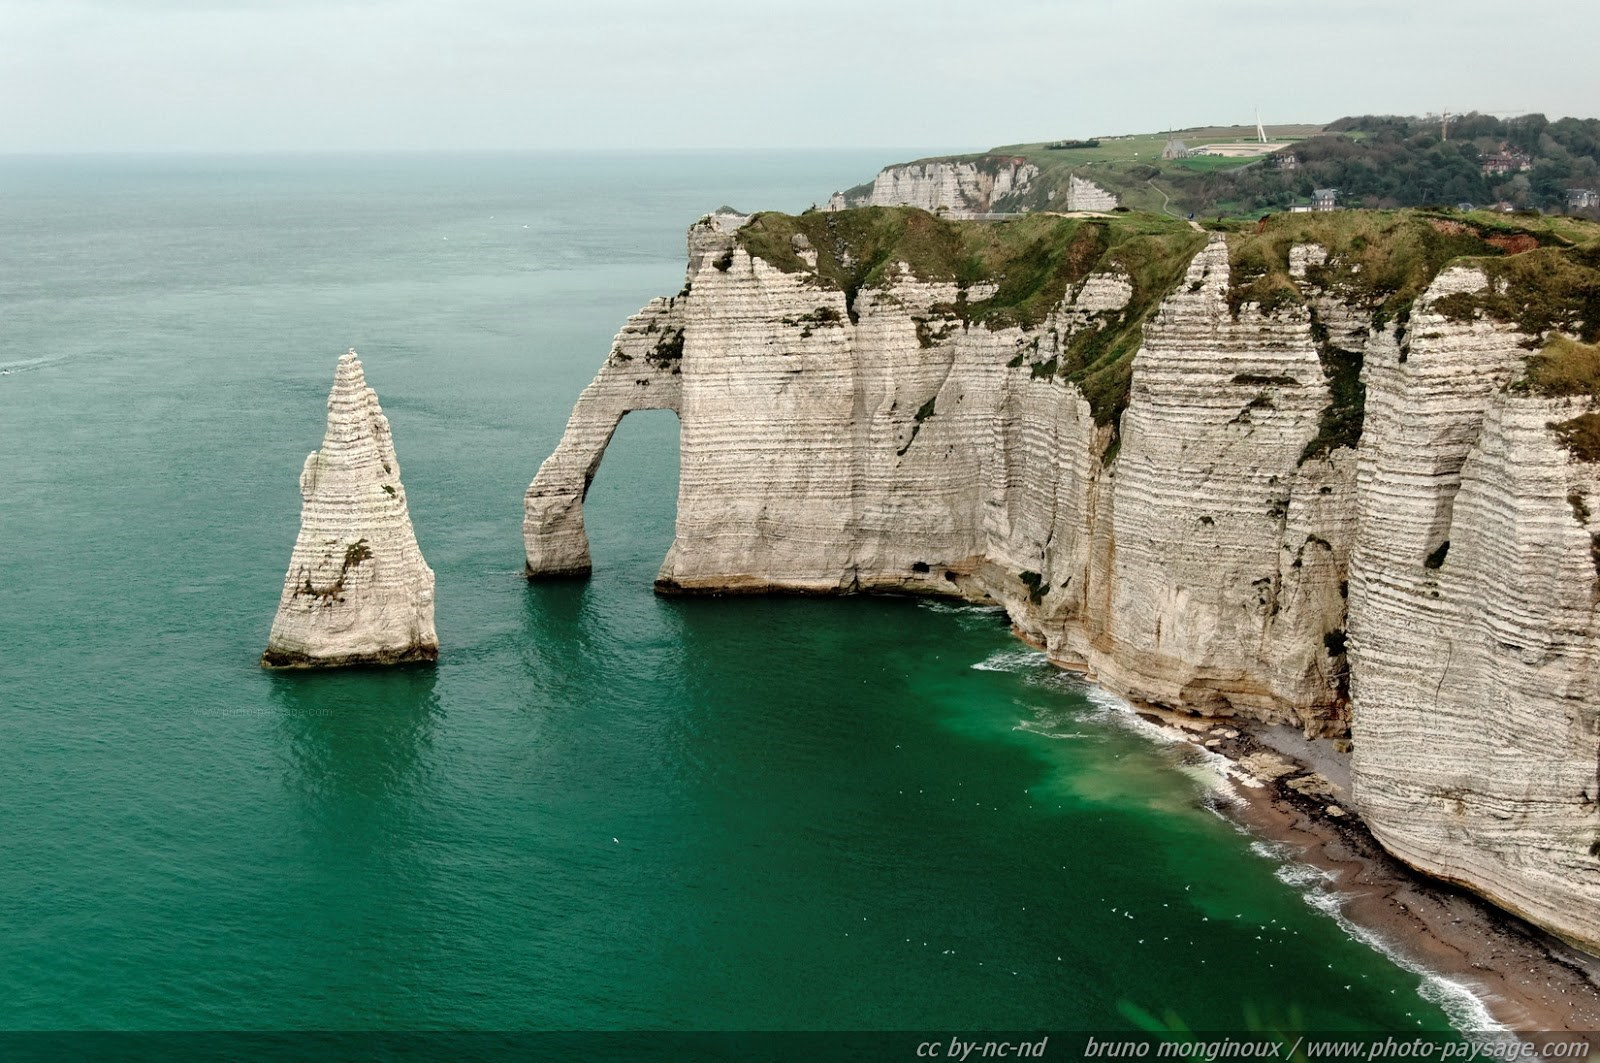 France - Paris and Normandy | 7 nights, 5 games